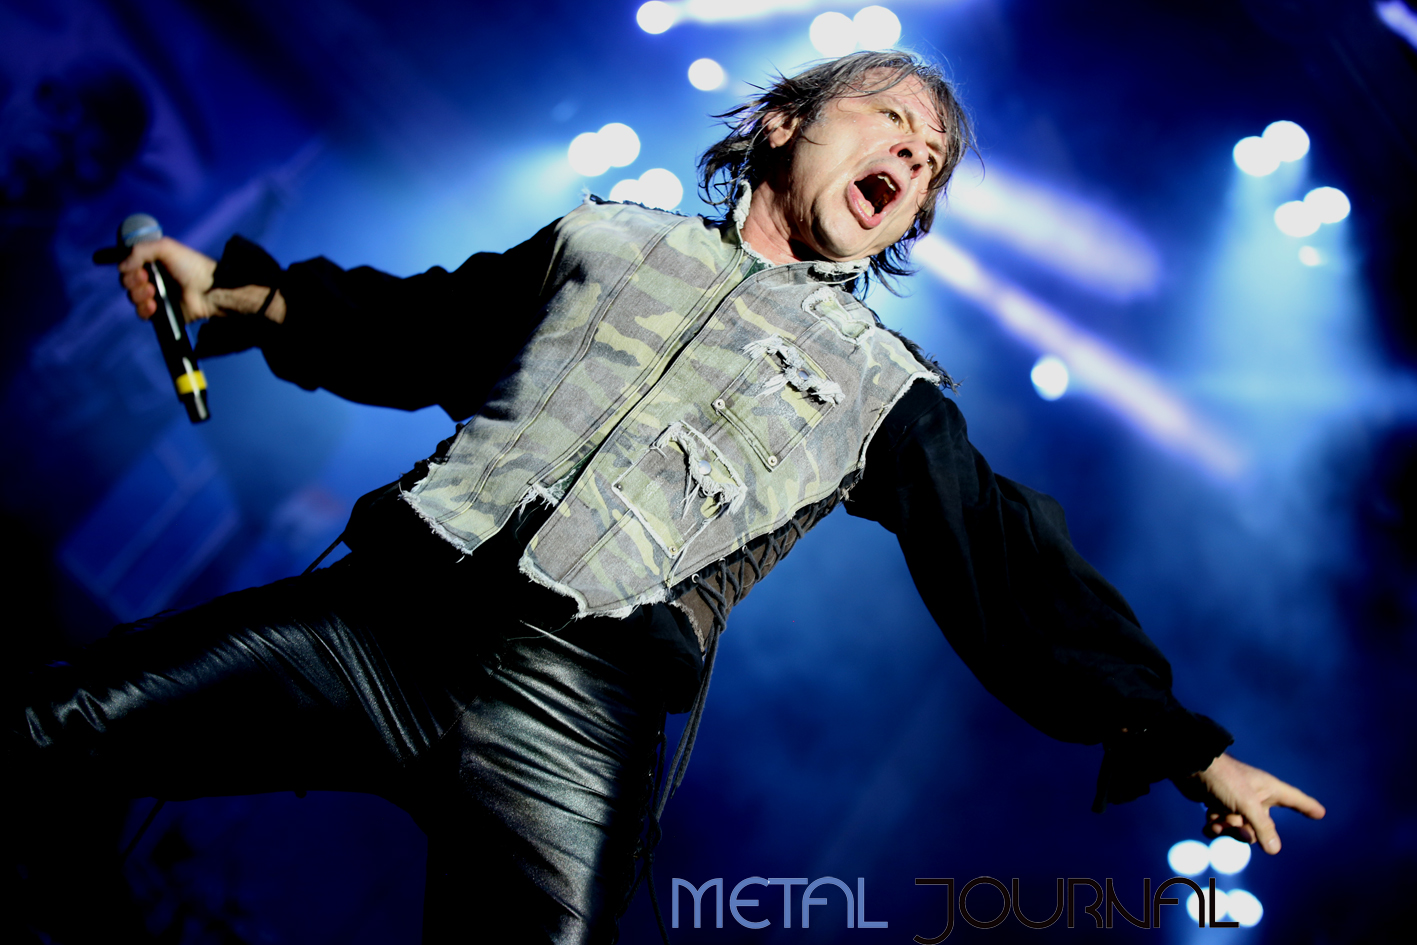 iron maiden - wanda metropolitano metal journal 2018 pic 7